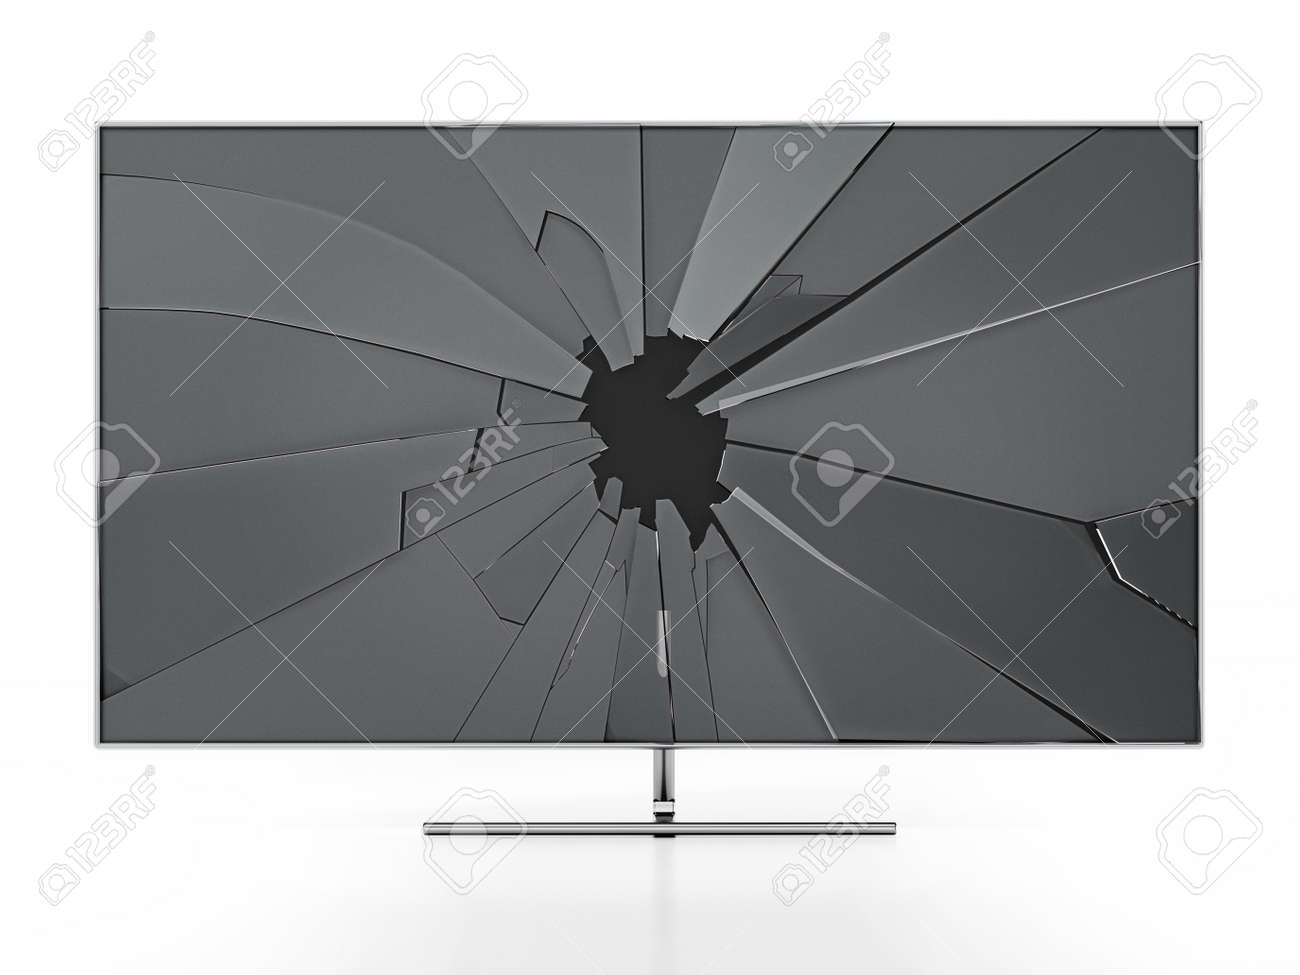 LCD TV with shattered screen isolated on white background. 3D illustration. - 173110860